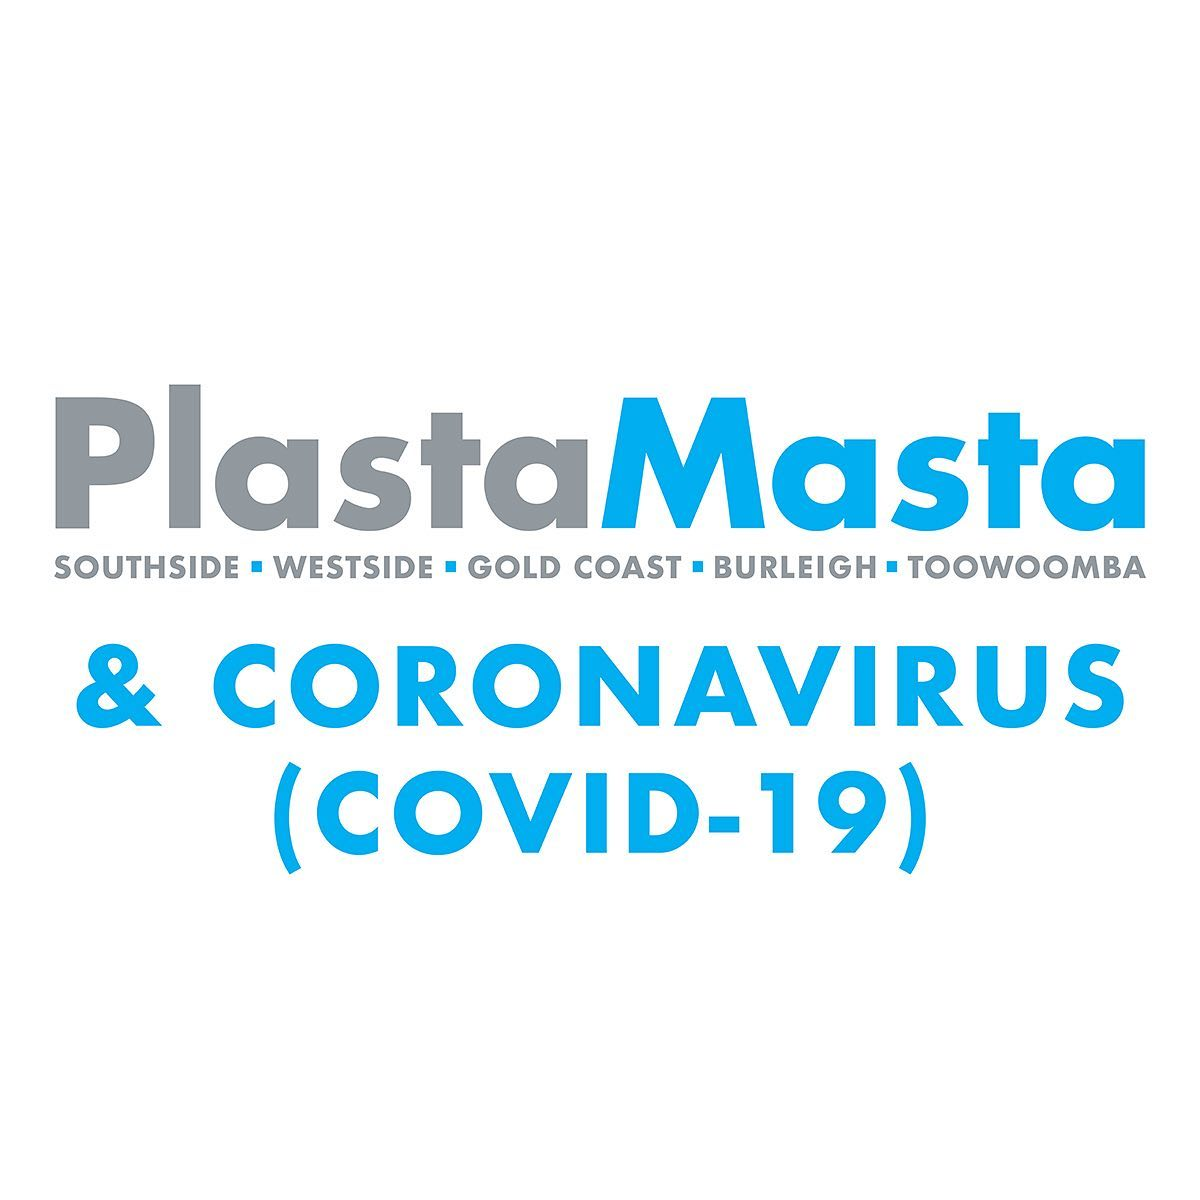 PlastaMasta Gold Coast and our response to COVID-19